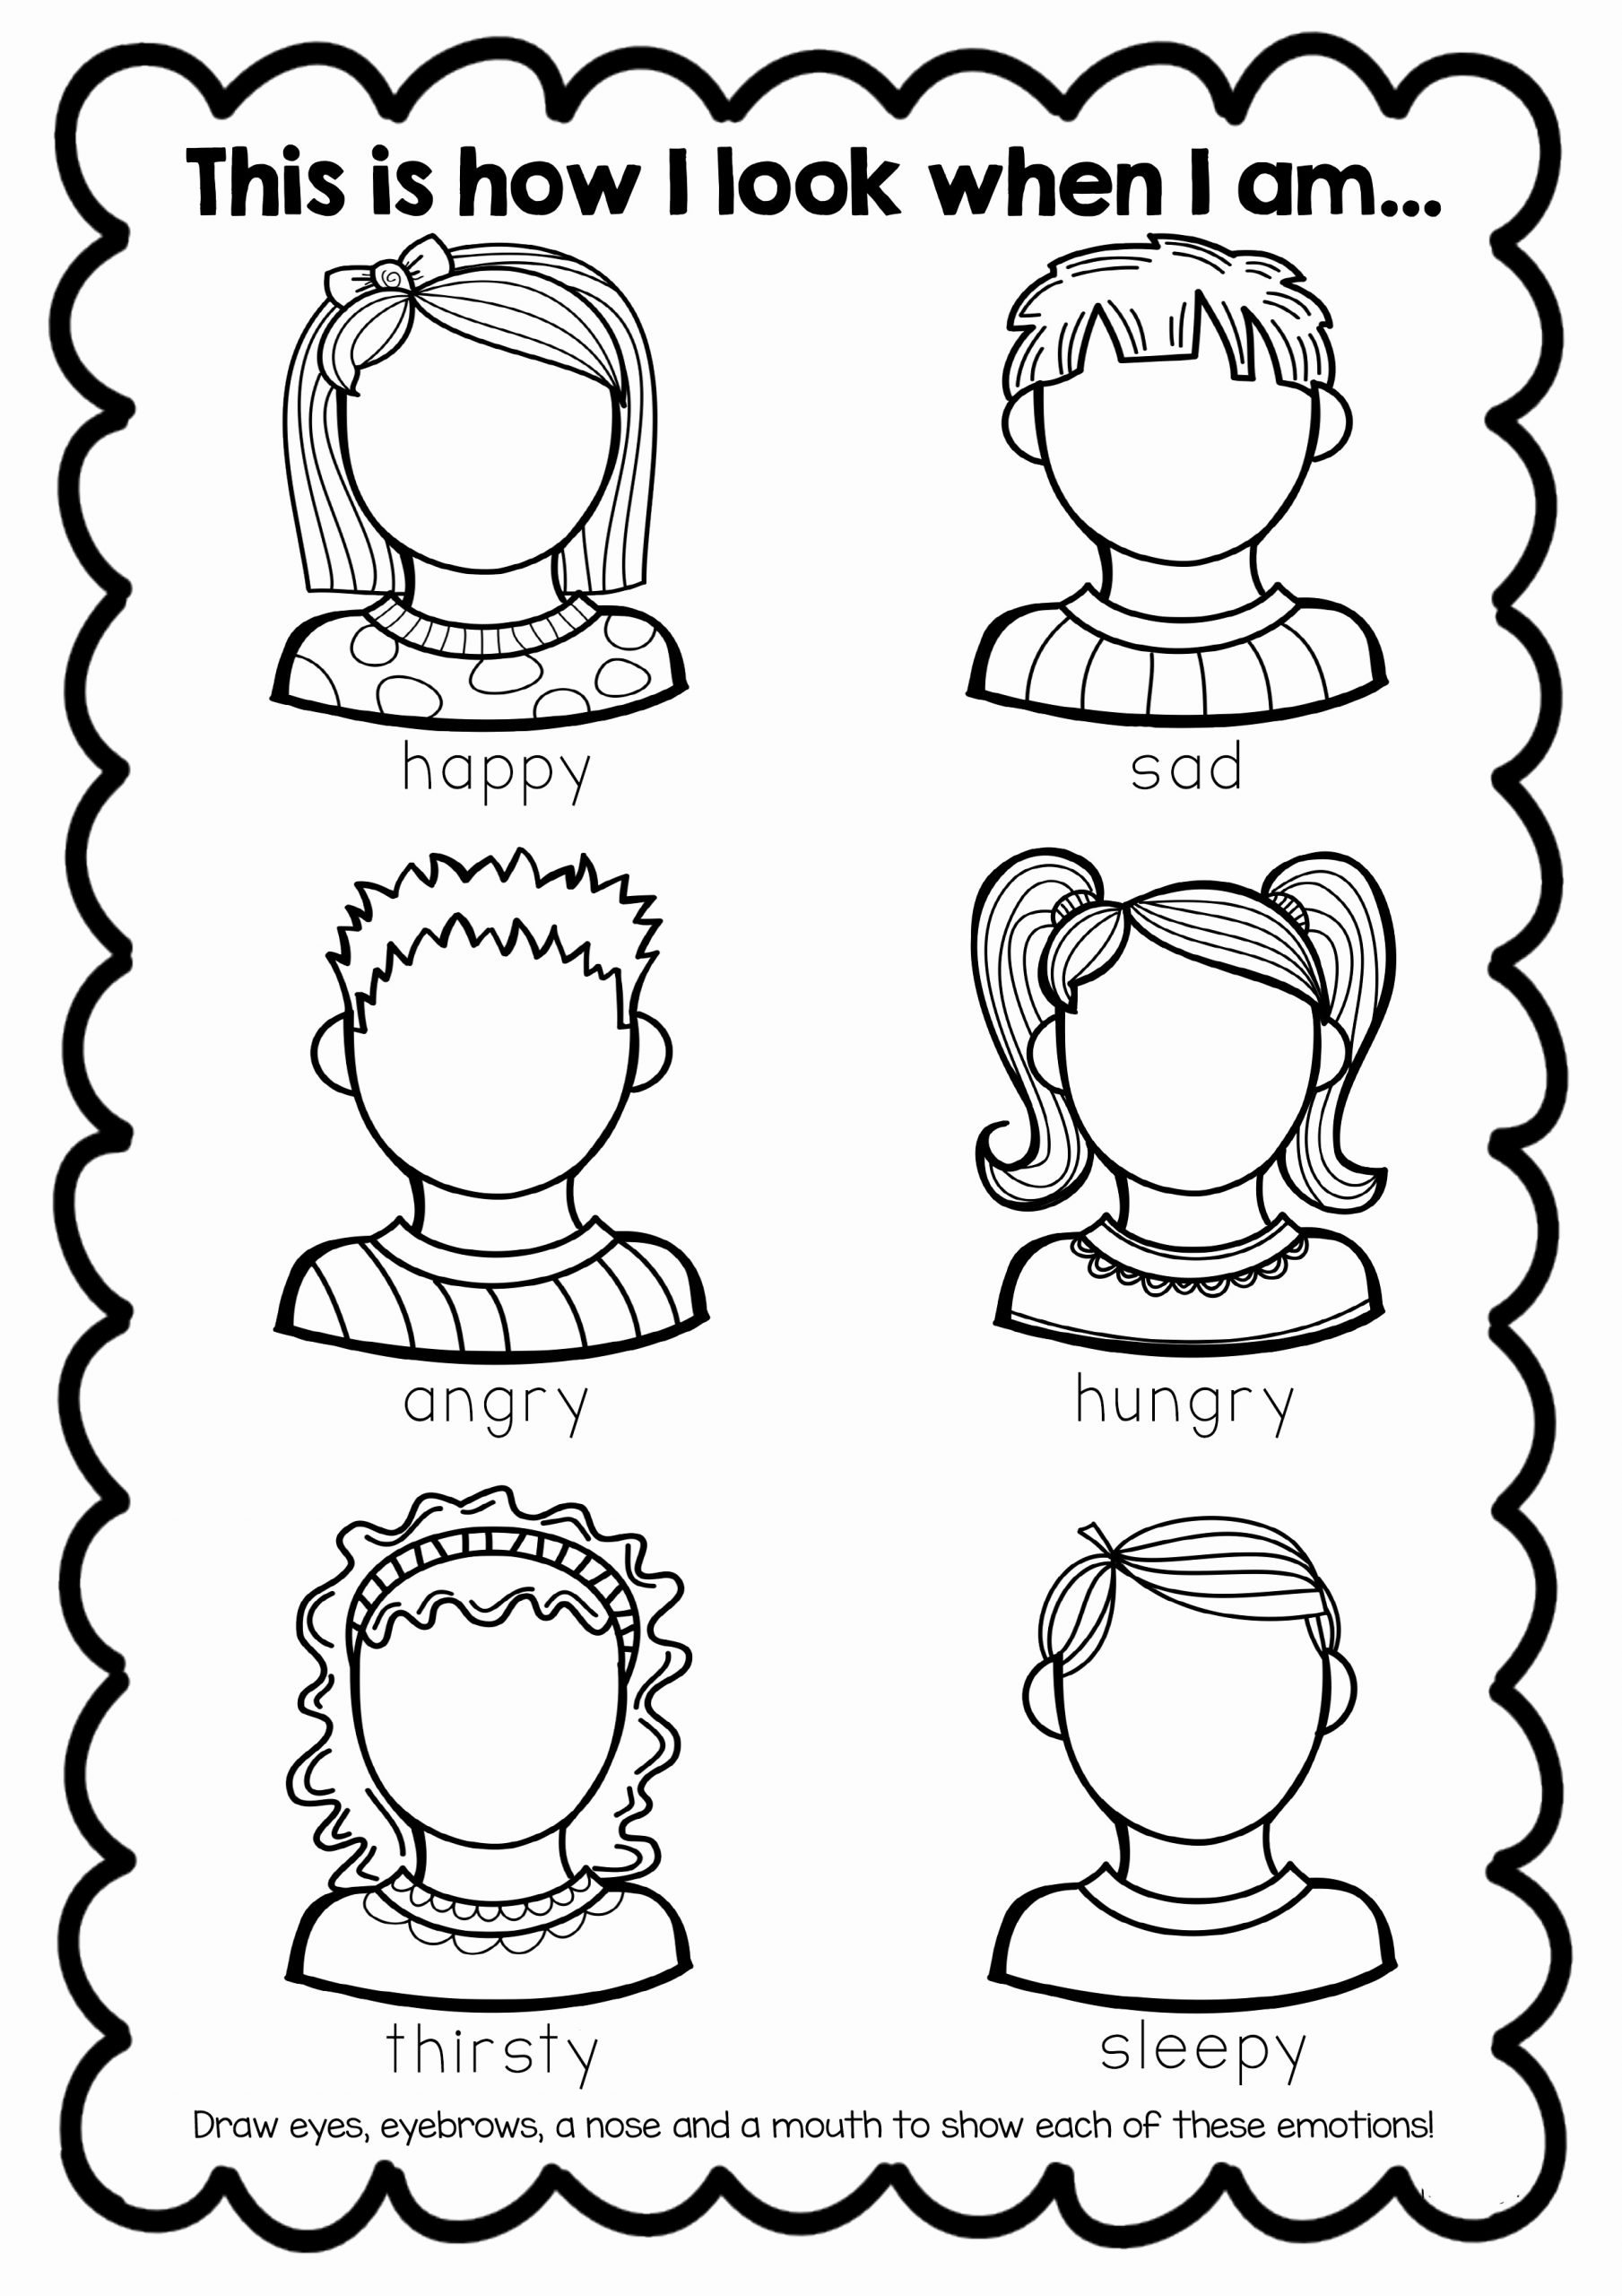 Worksheets for Preschoolers About Feelings Kids Free Feelings Worksheet